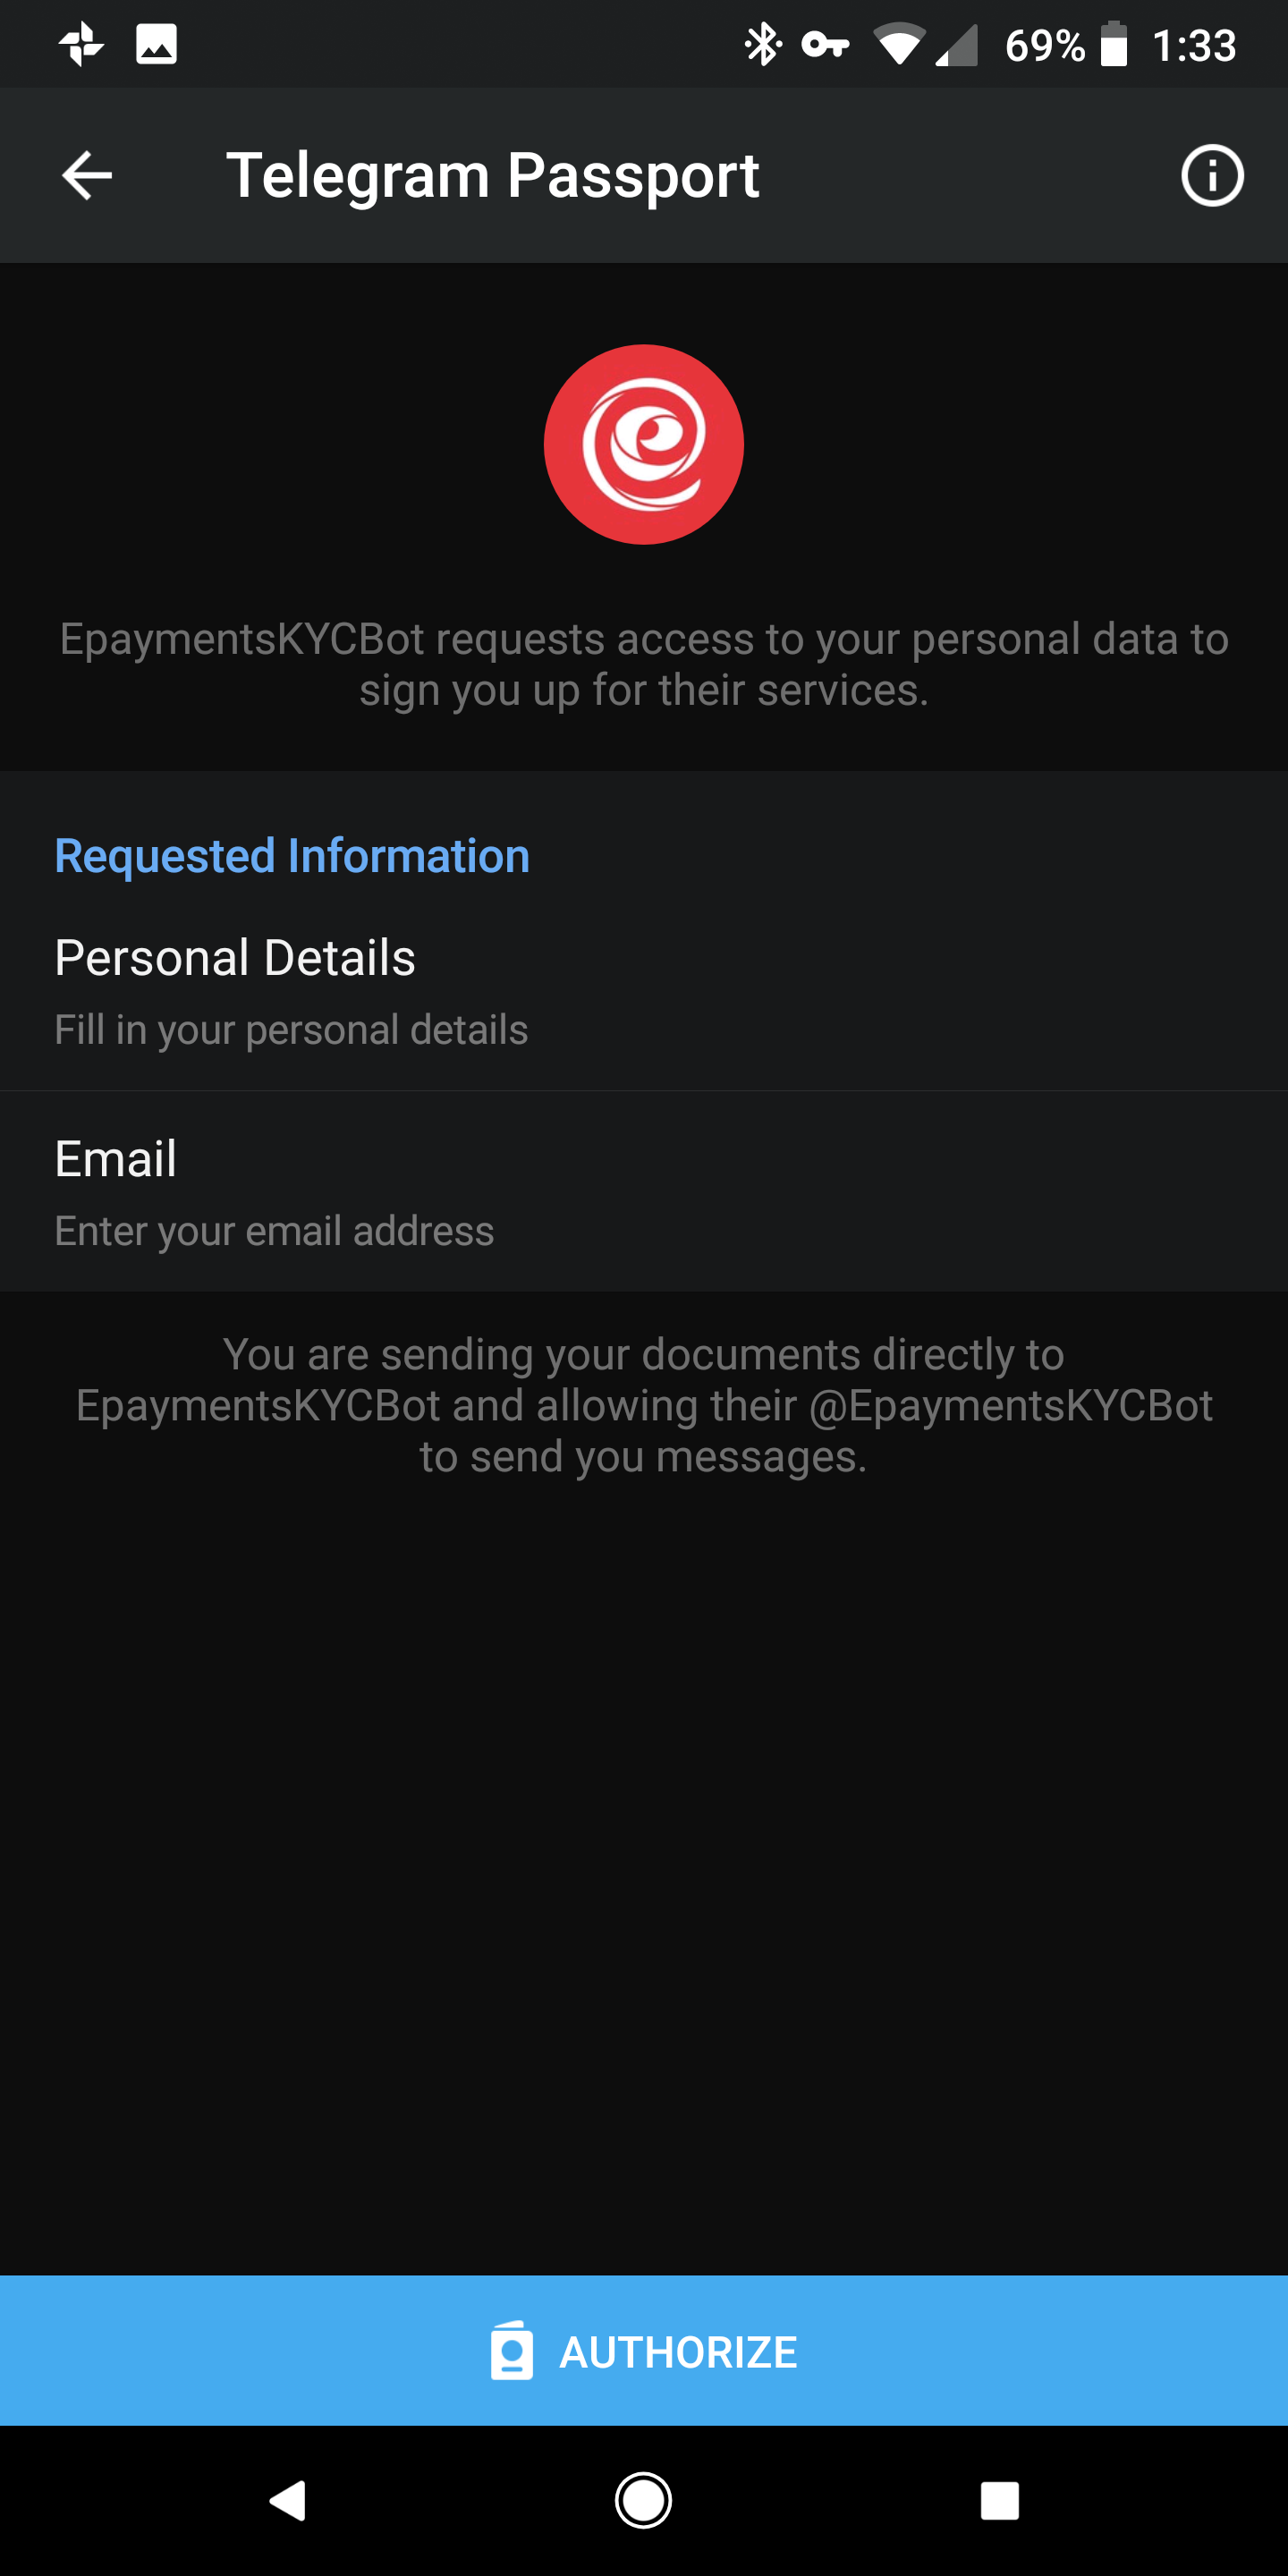 How to Russify Telegrams on Android: some useful tips